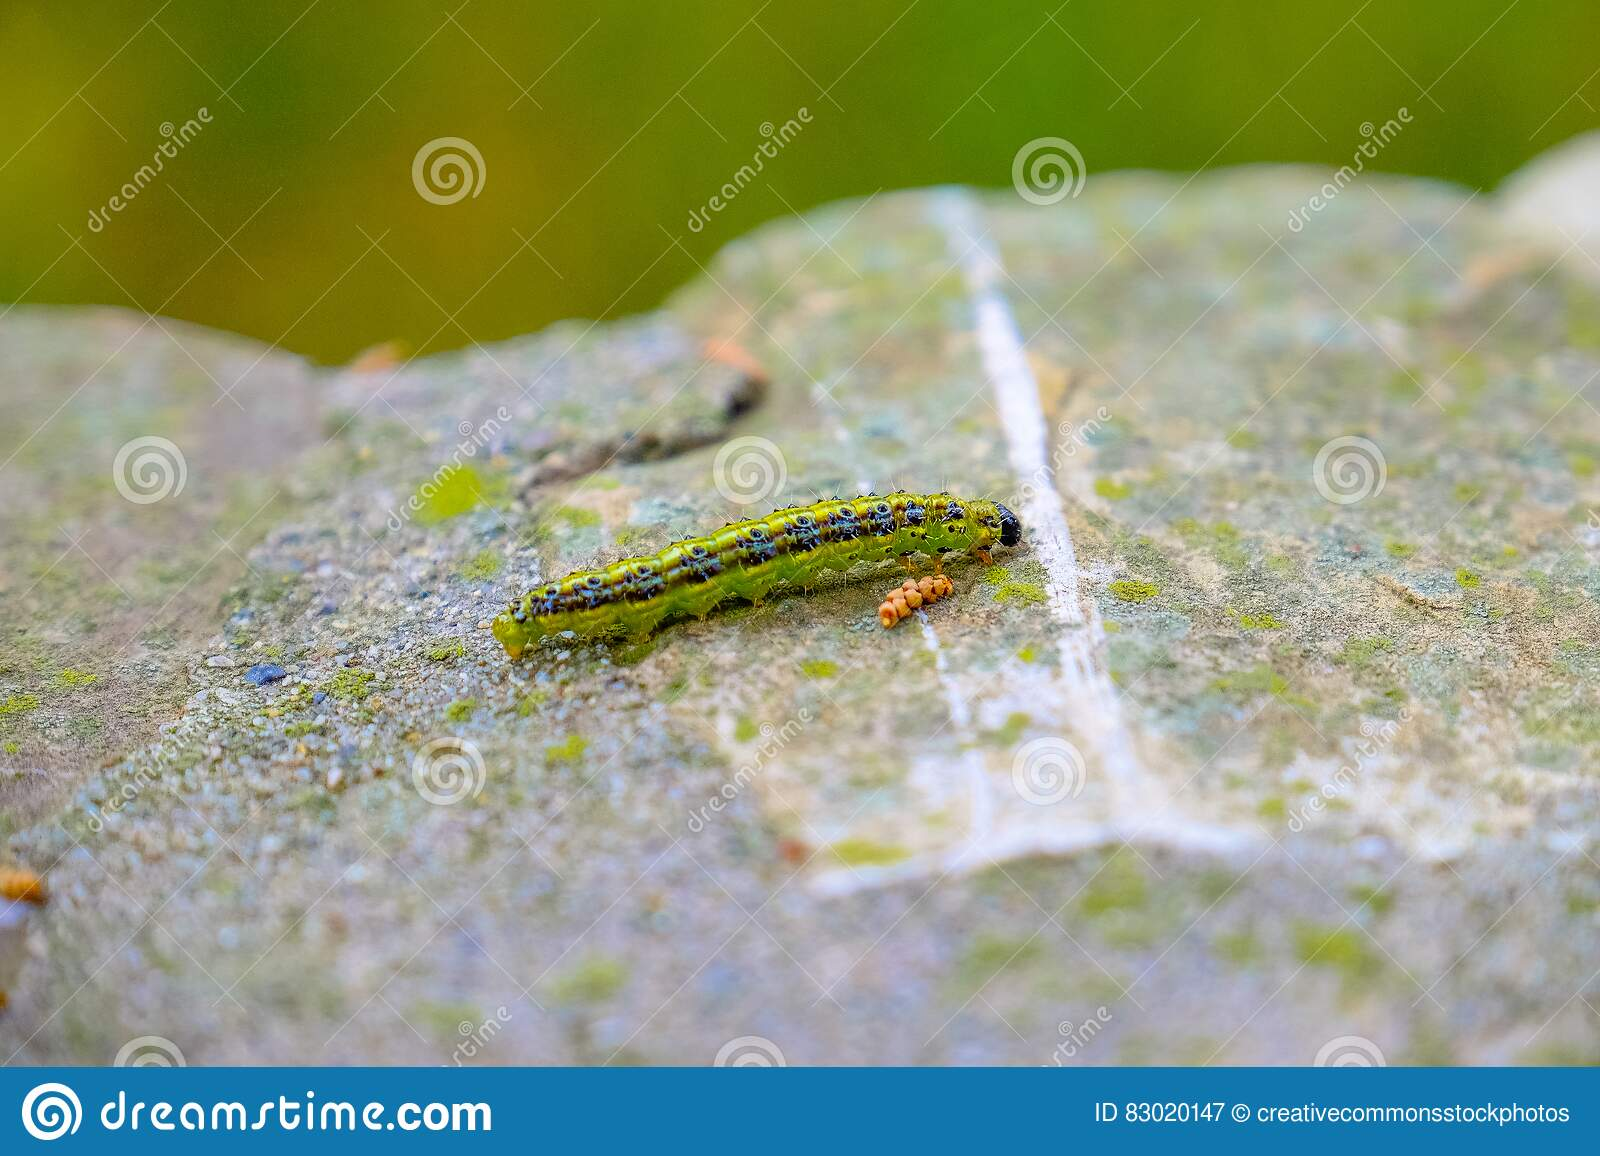 Download Caterpillar on rock stock image. Image of green, stone - 83020147